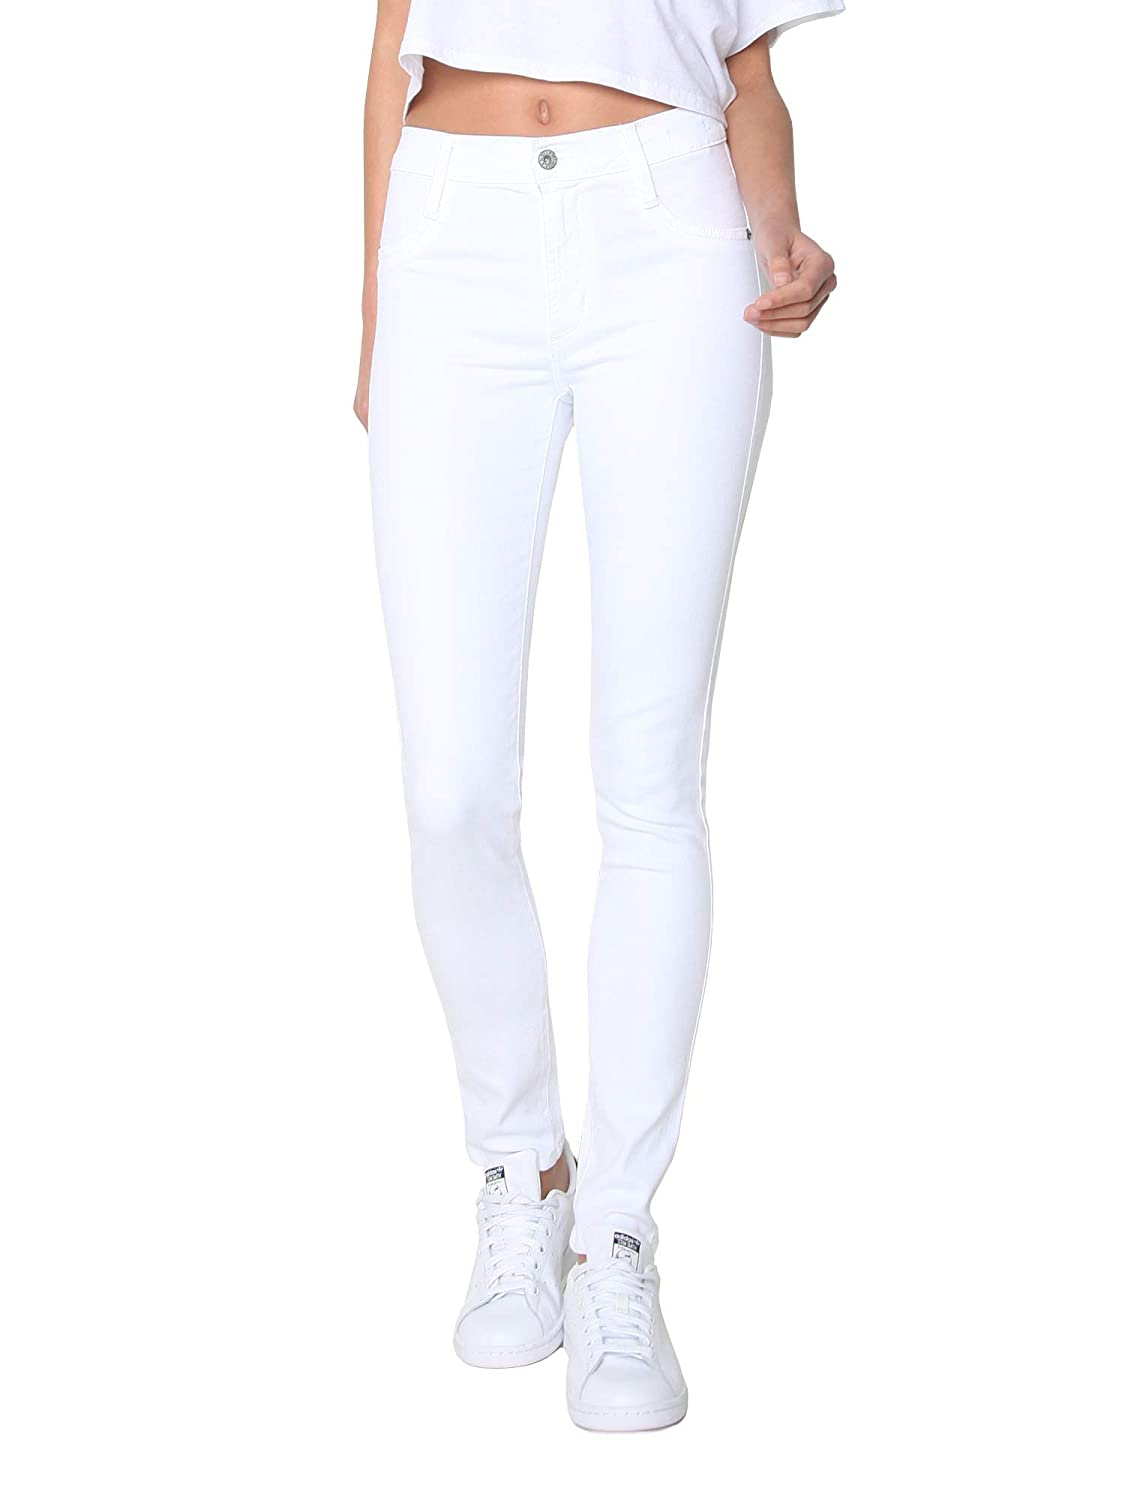 292bf8ce9 Amazon.com: James Jeans Women's High Waisted Skinny Jeans in Fresh White:  Clothing